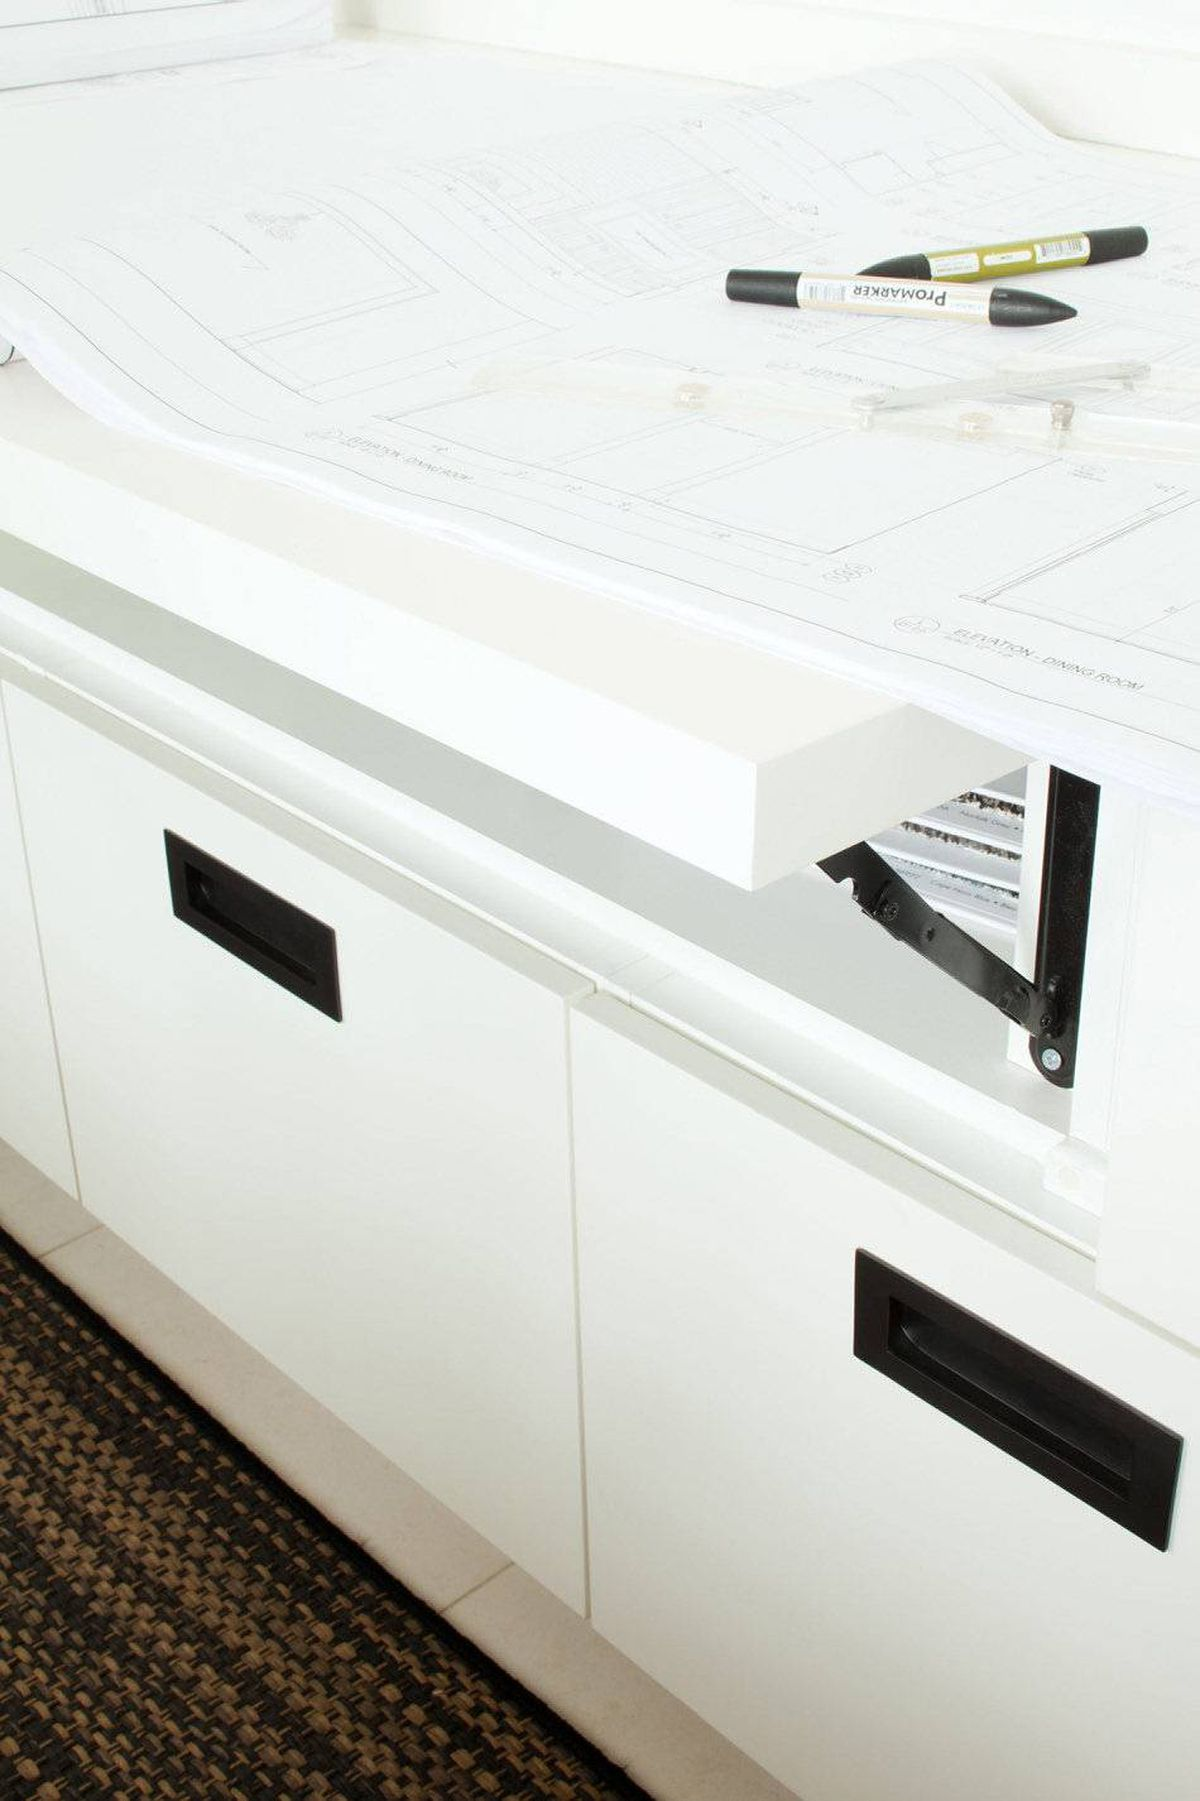 A flip-up countertop serves as a good surface on which to review architectural drawings.